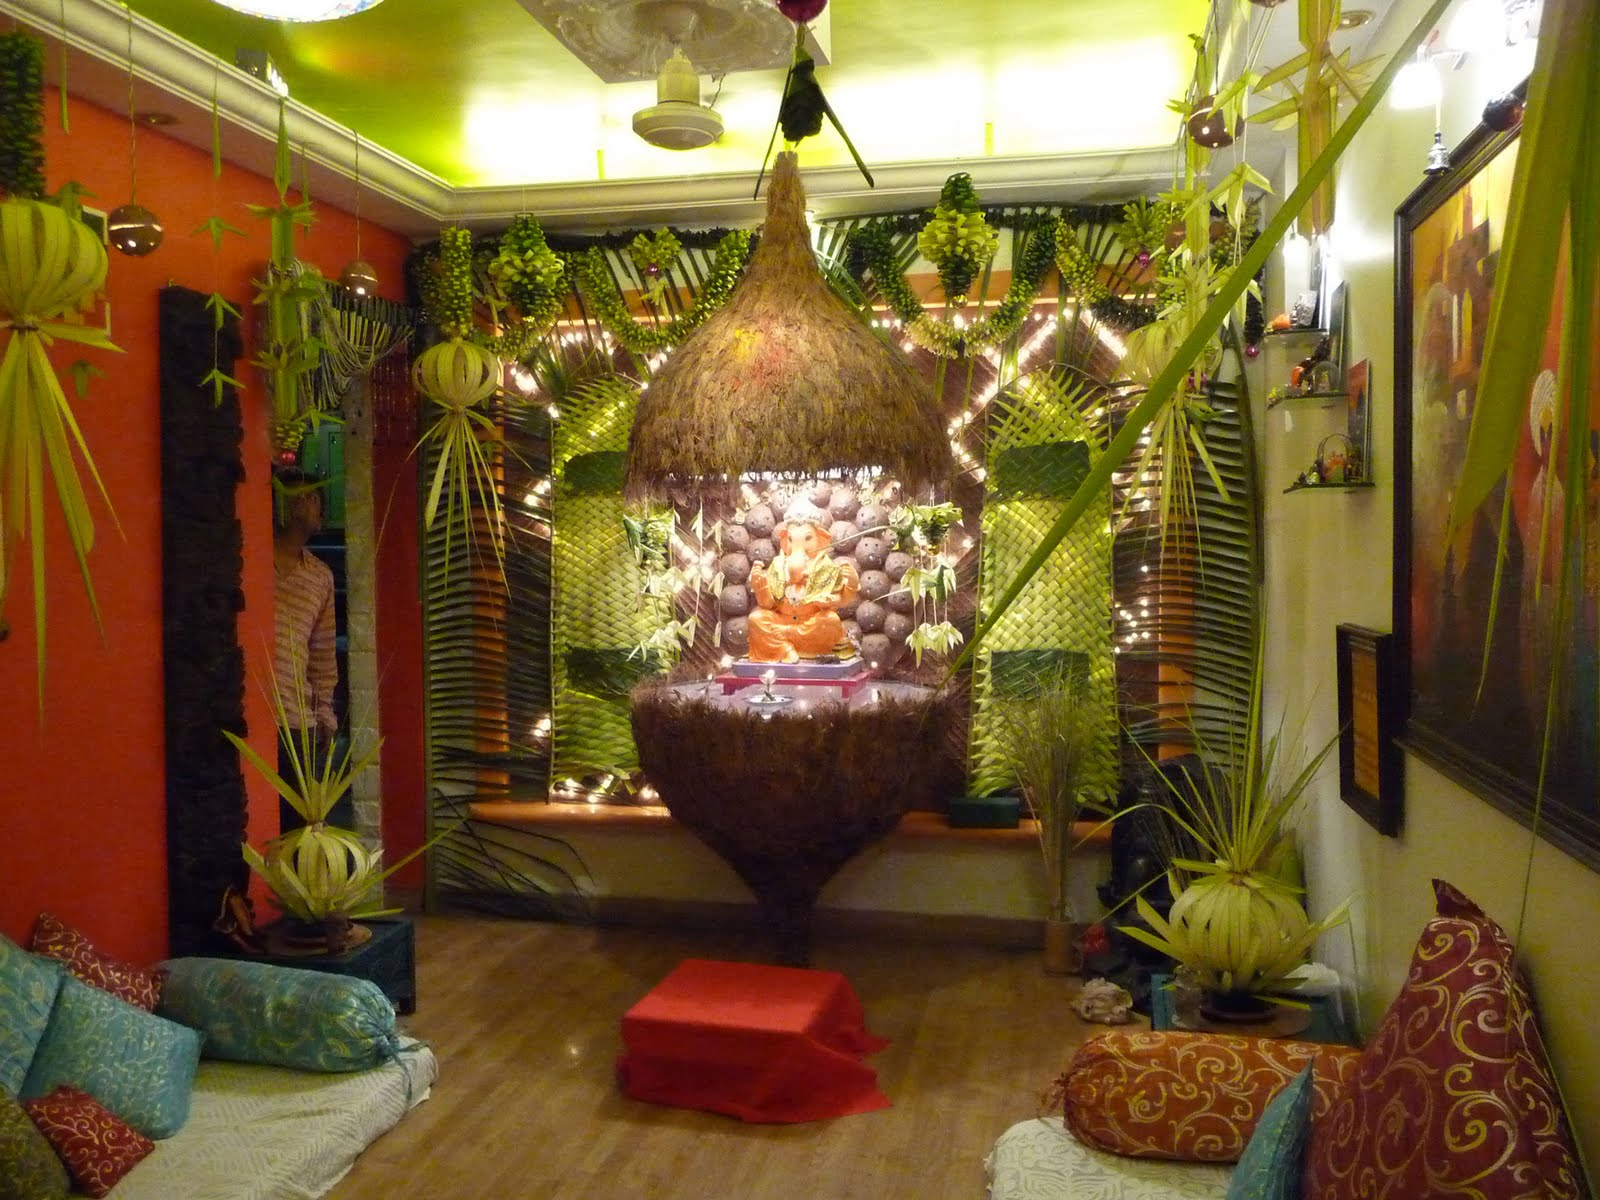 Ganesh chaturthi decoration ideas for home Latest decoration ideas